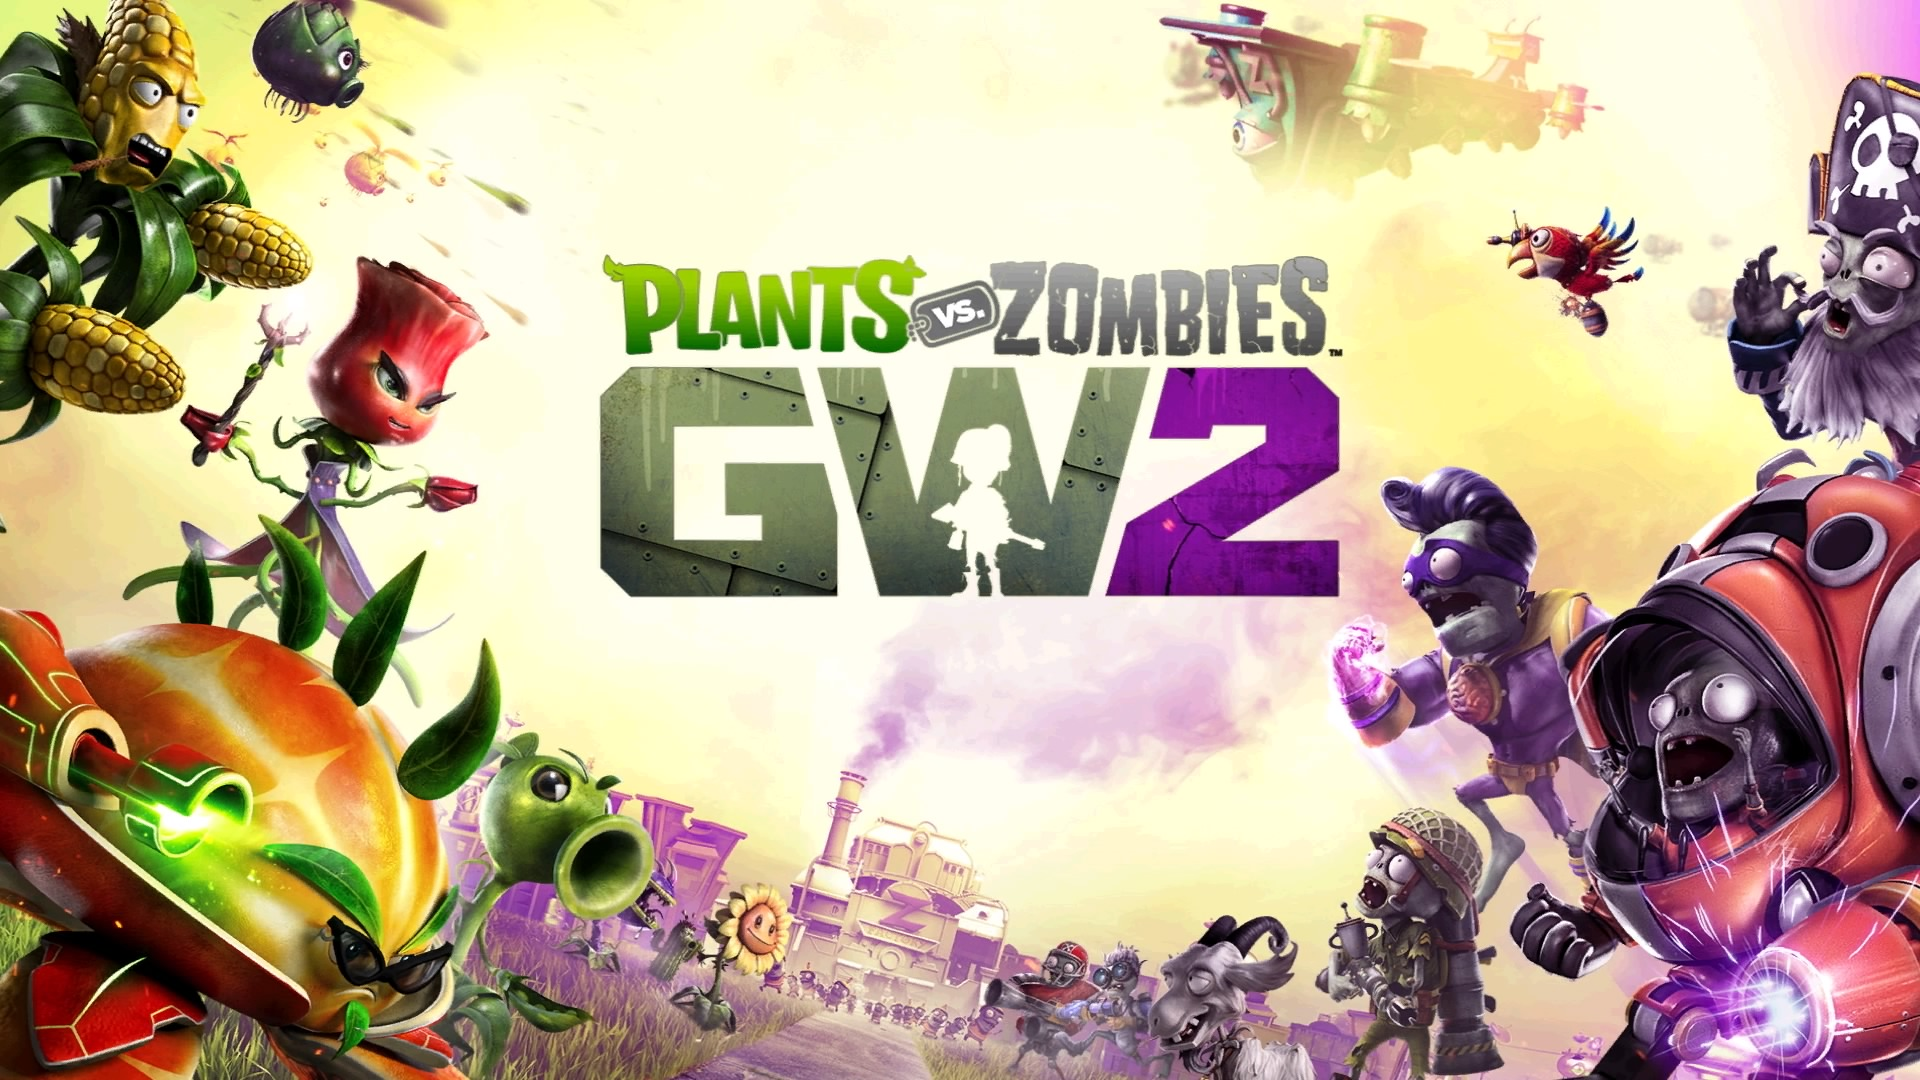 and vs characters warfare youtube plants new garden zombies all watch